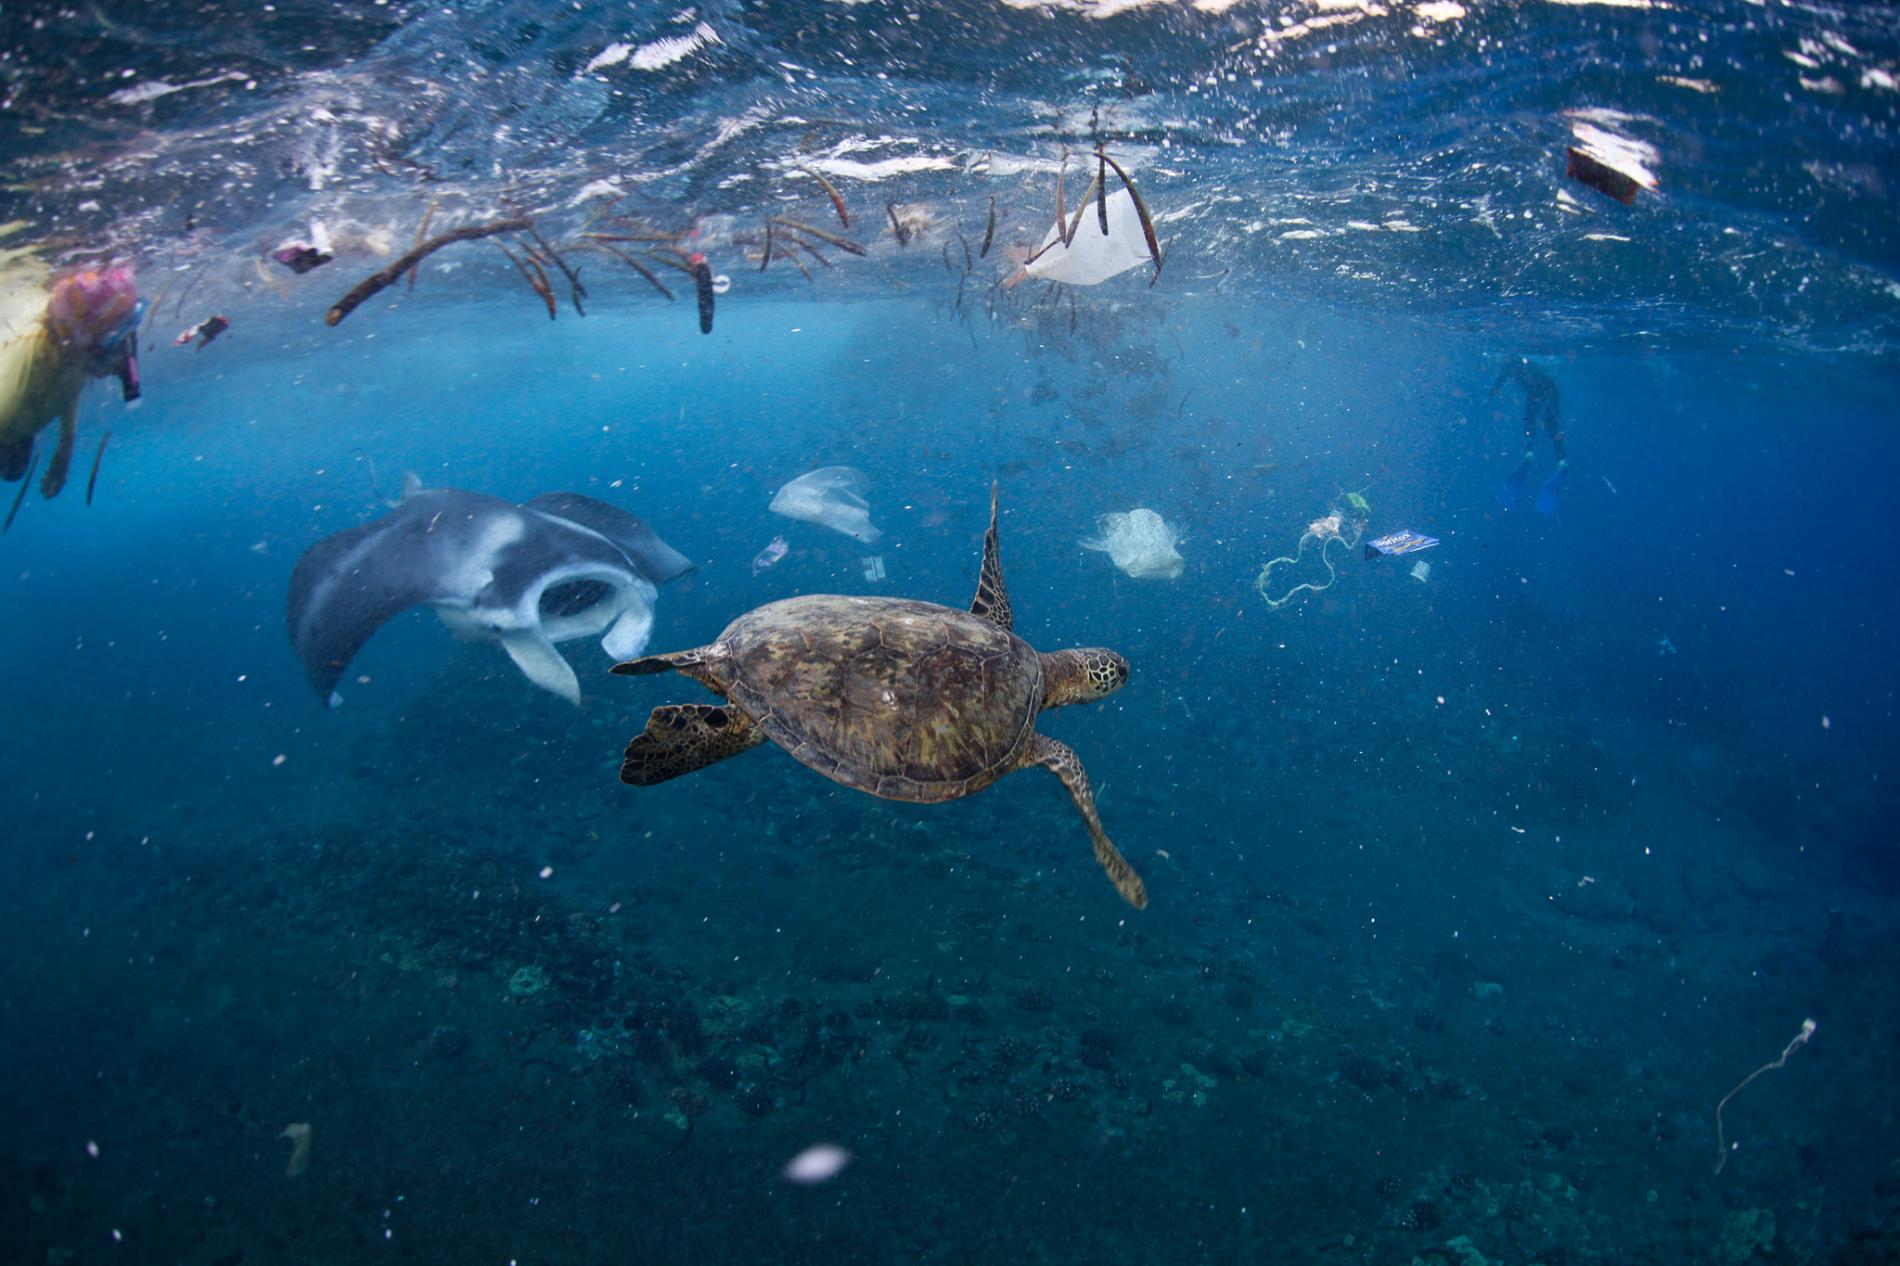 Plastic in Oceans – 5 Fast Facts